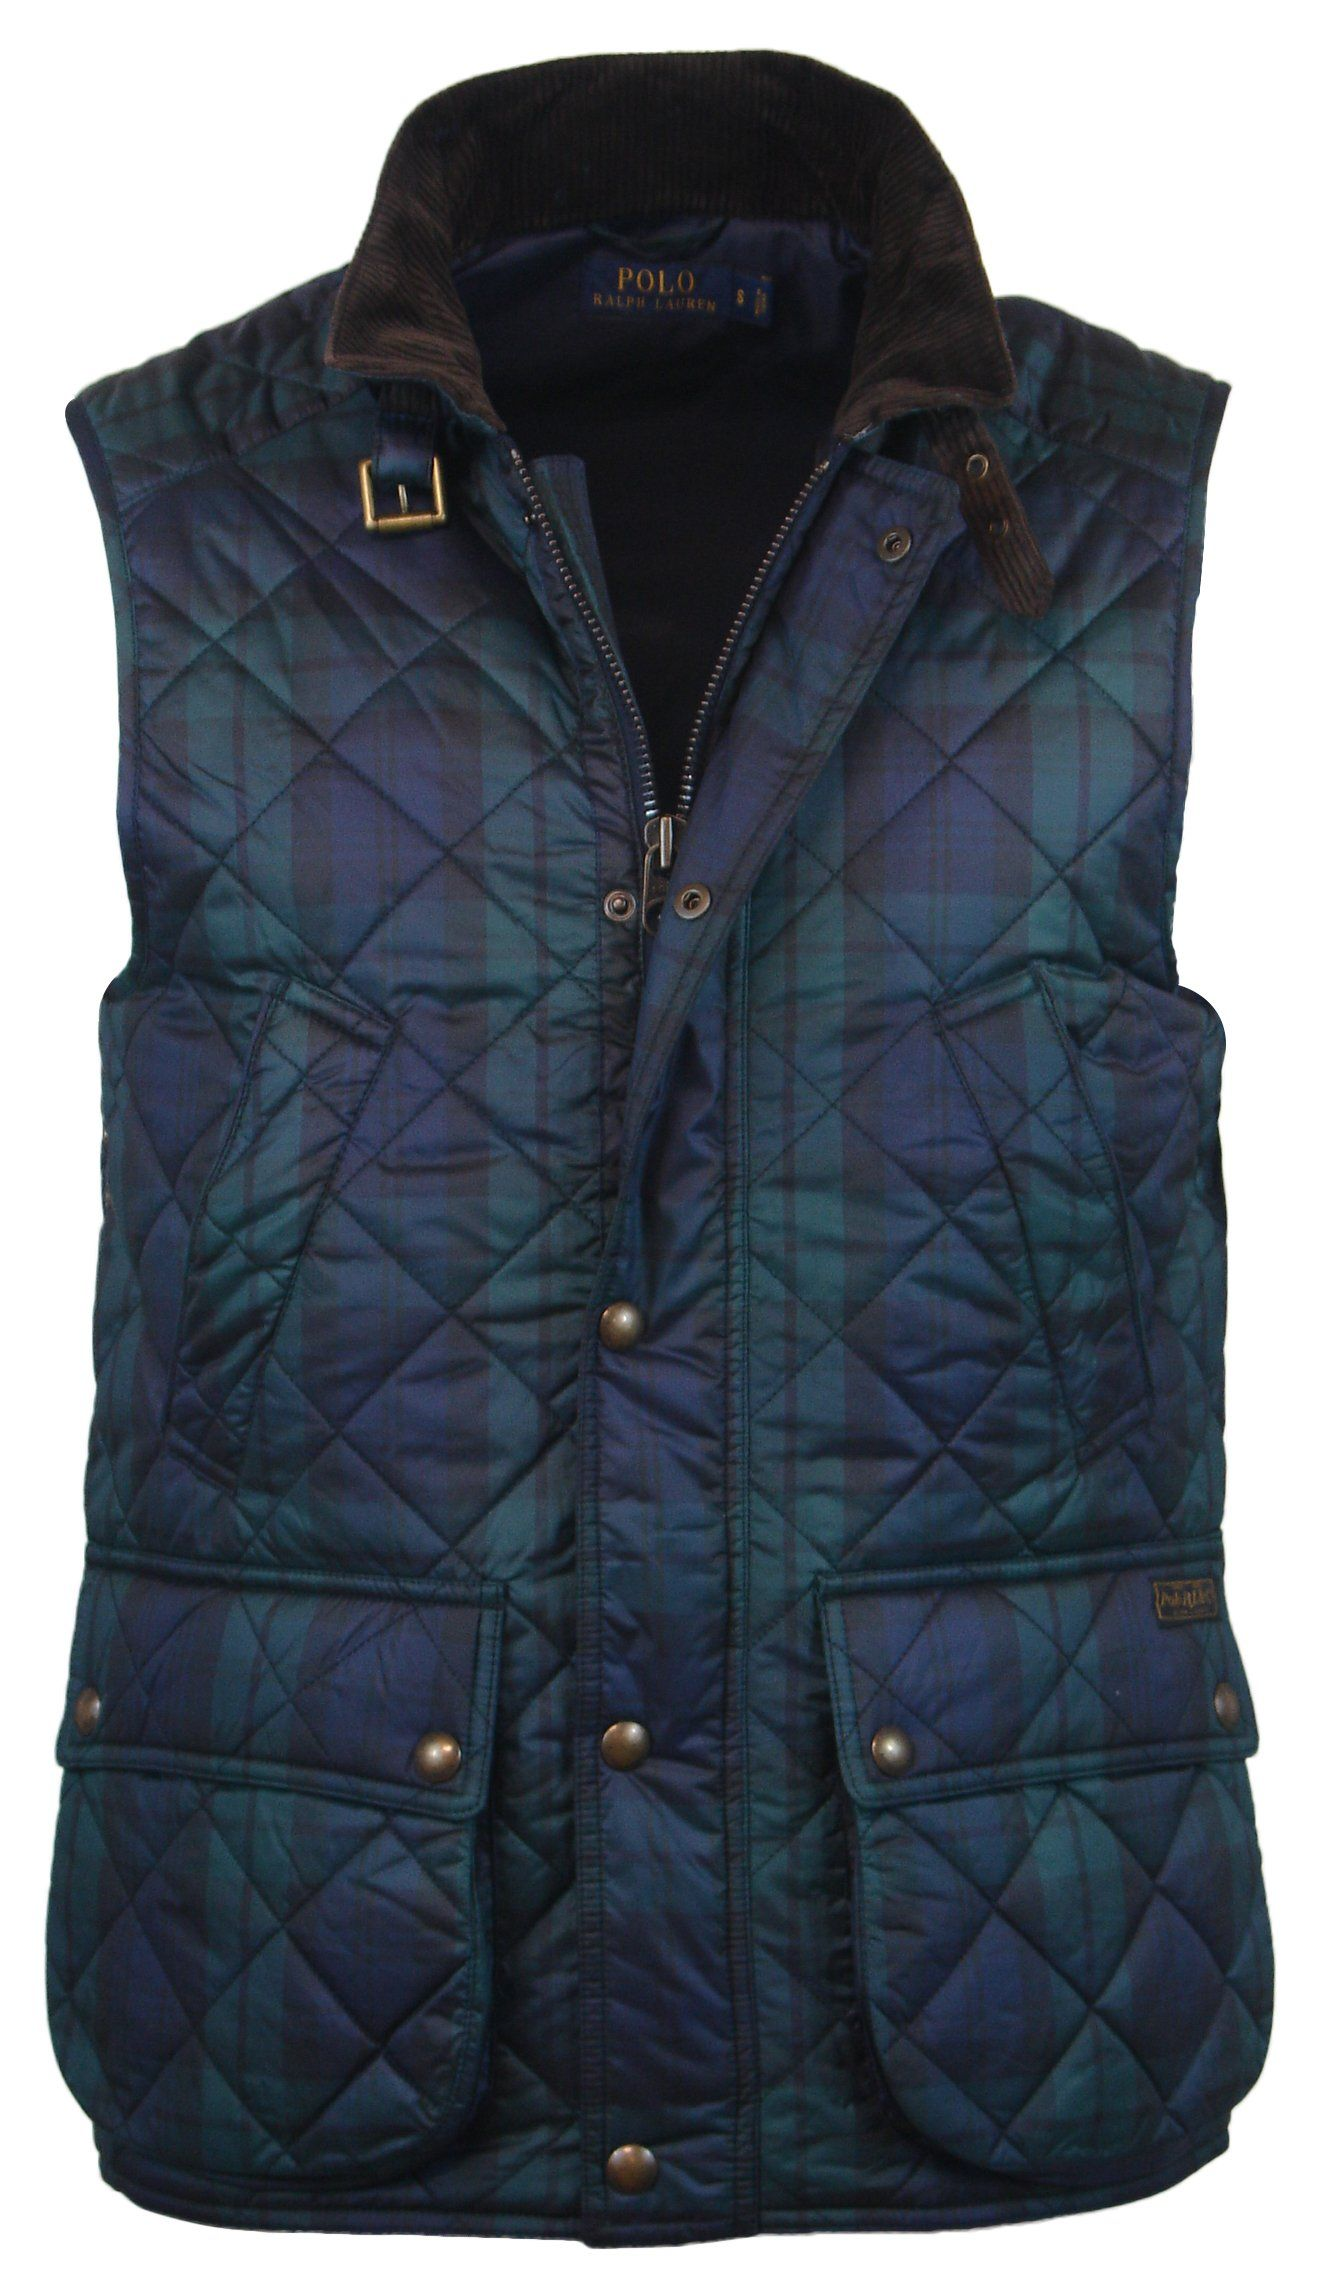 e704814f Polo Ralph Lauren Quilted Outerwear Vest - Navy/Green Plaid | Ralph ...